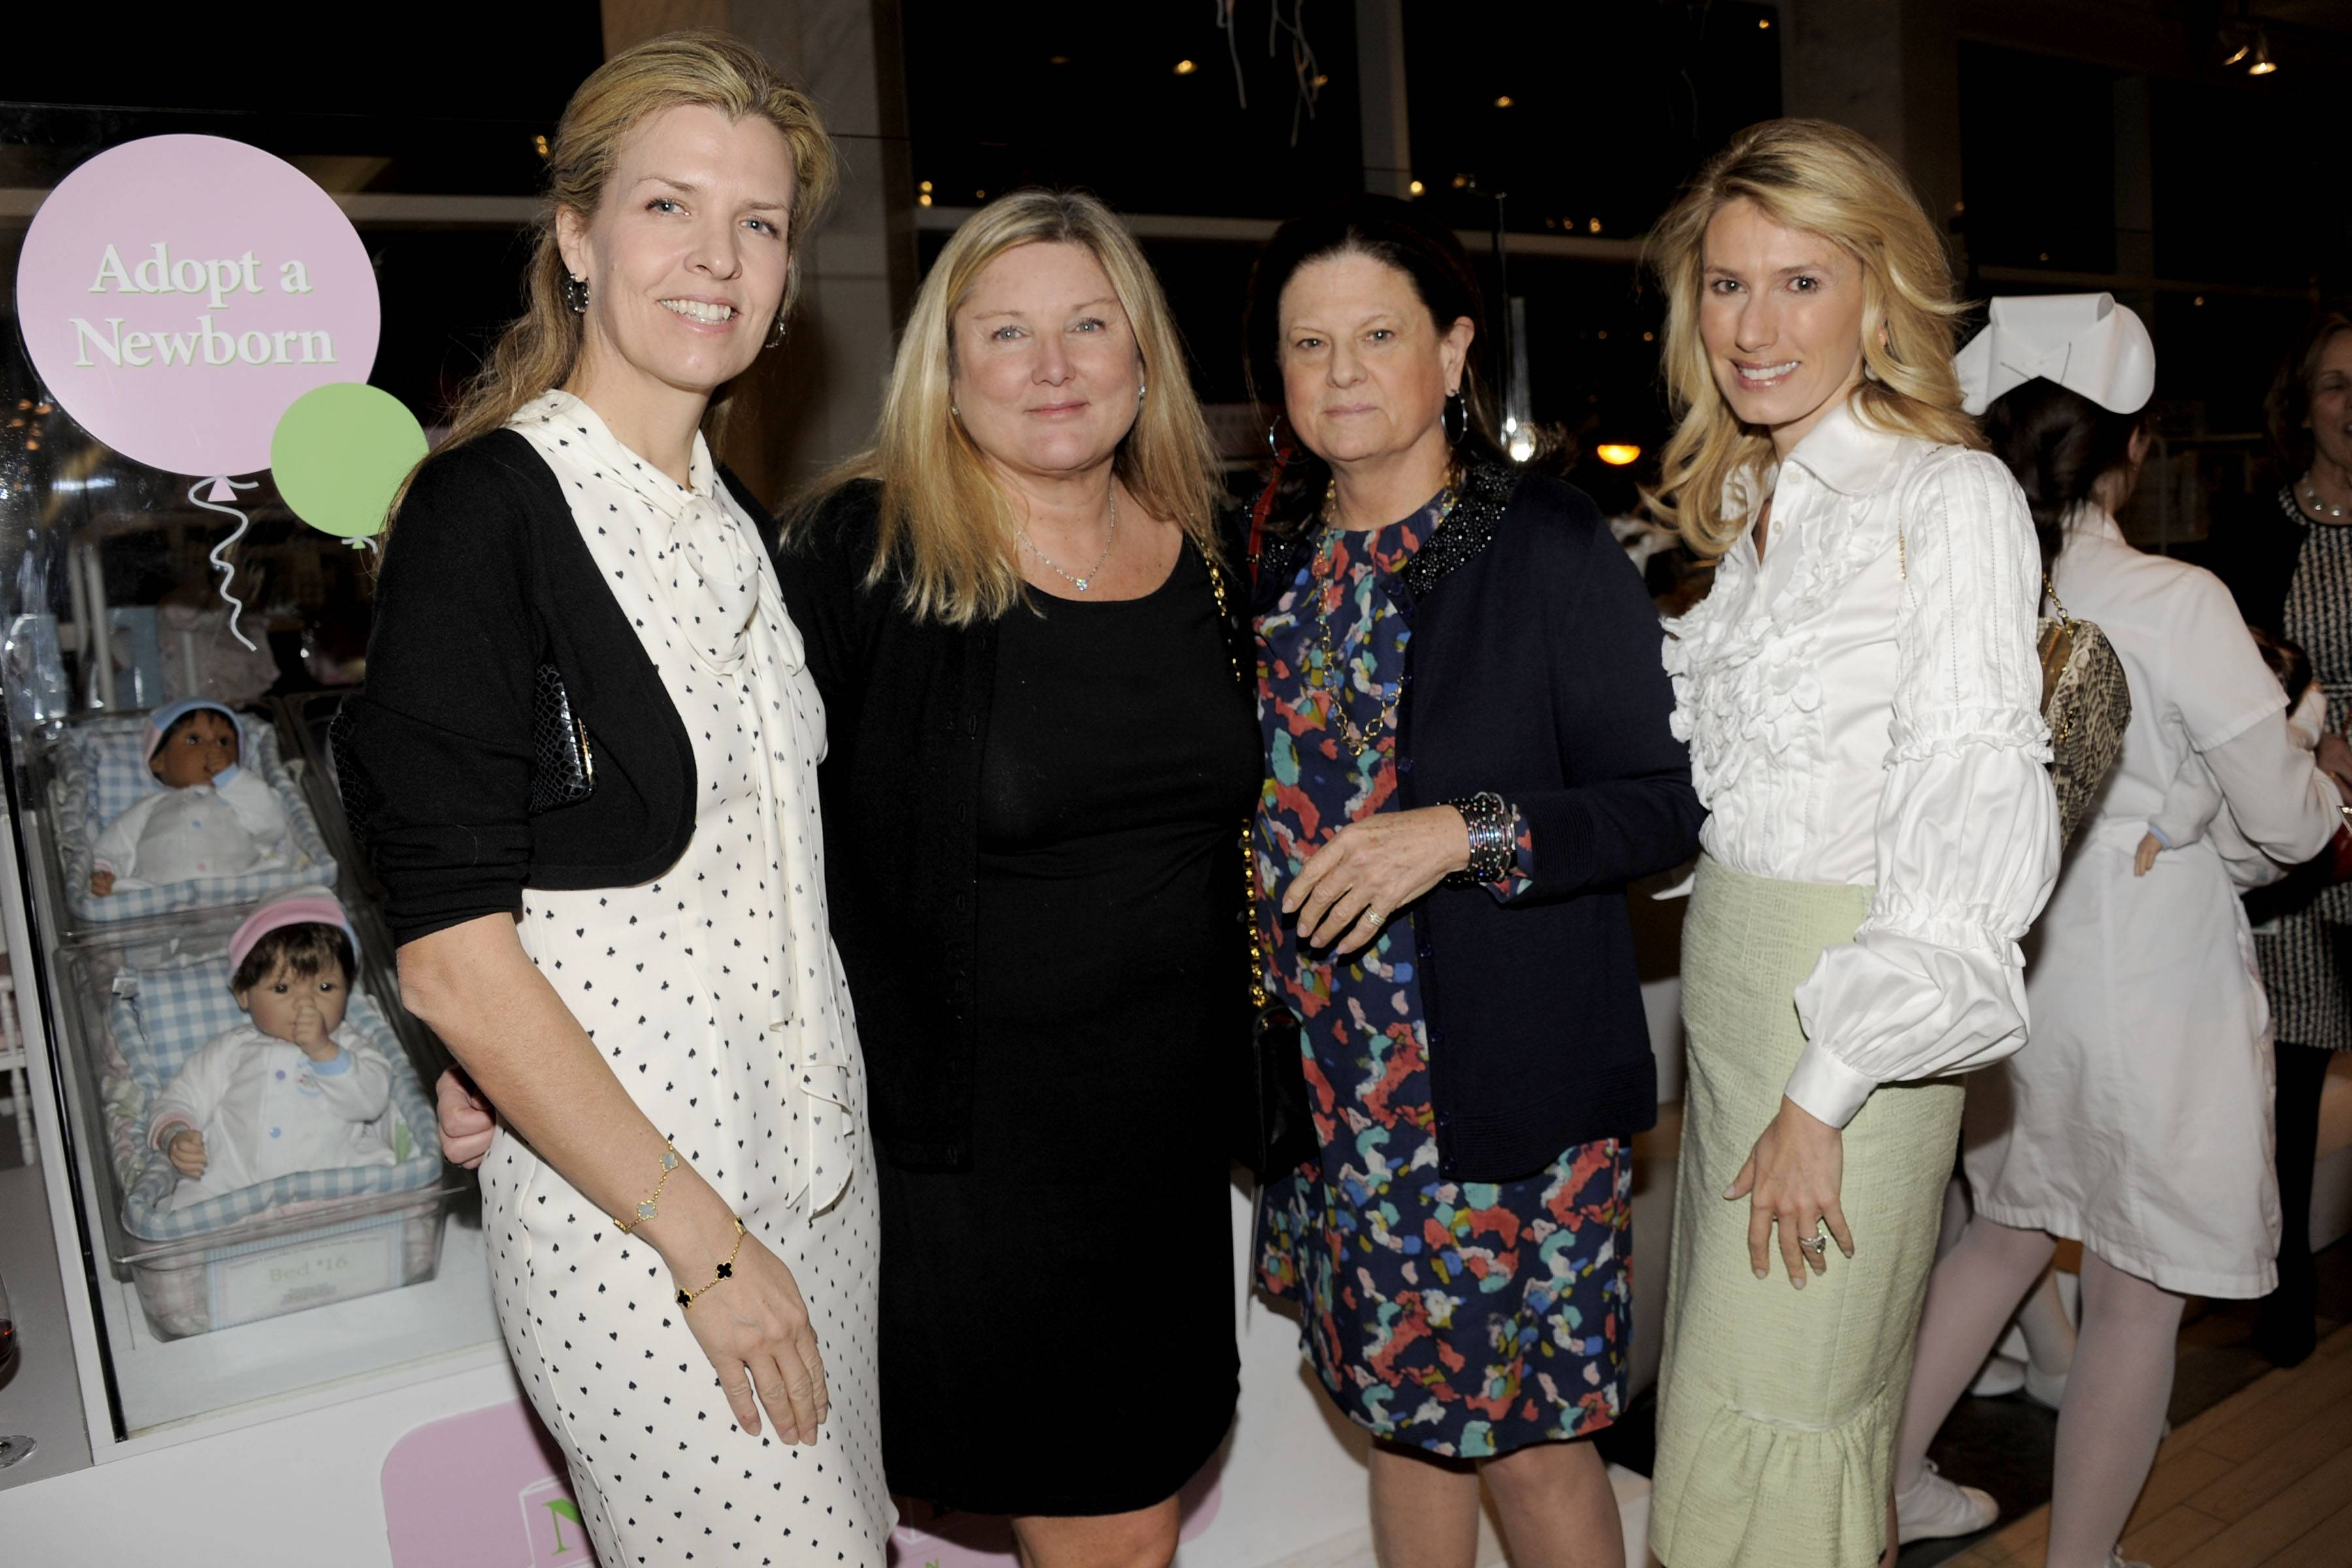 Heather Leeds, Courtney Arnot, Anne Keating, Claudia Overstrom